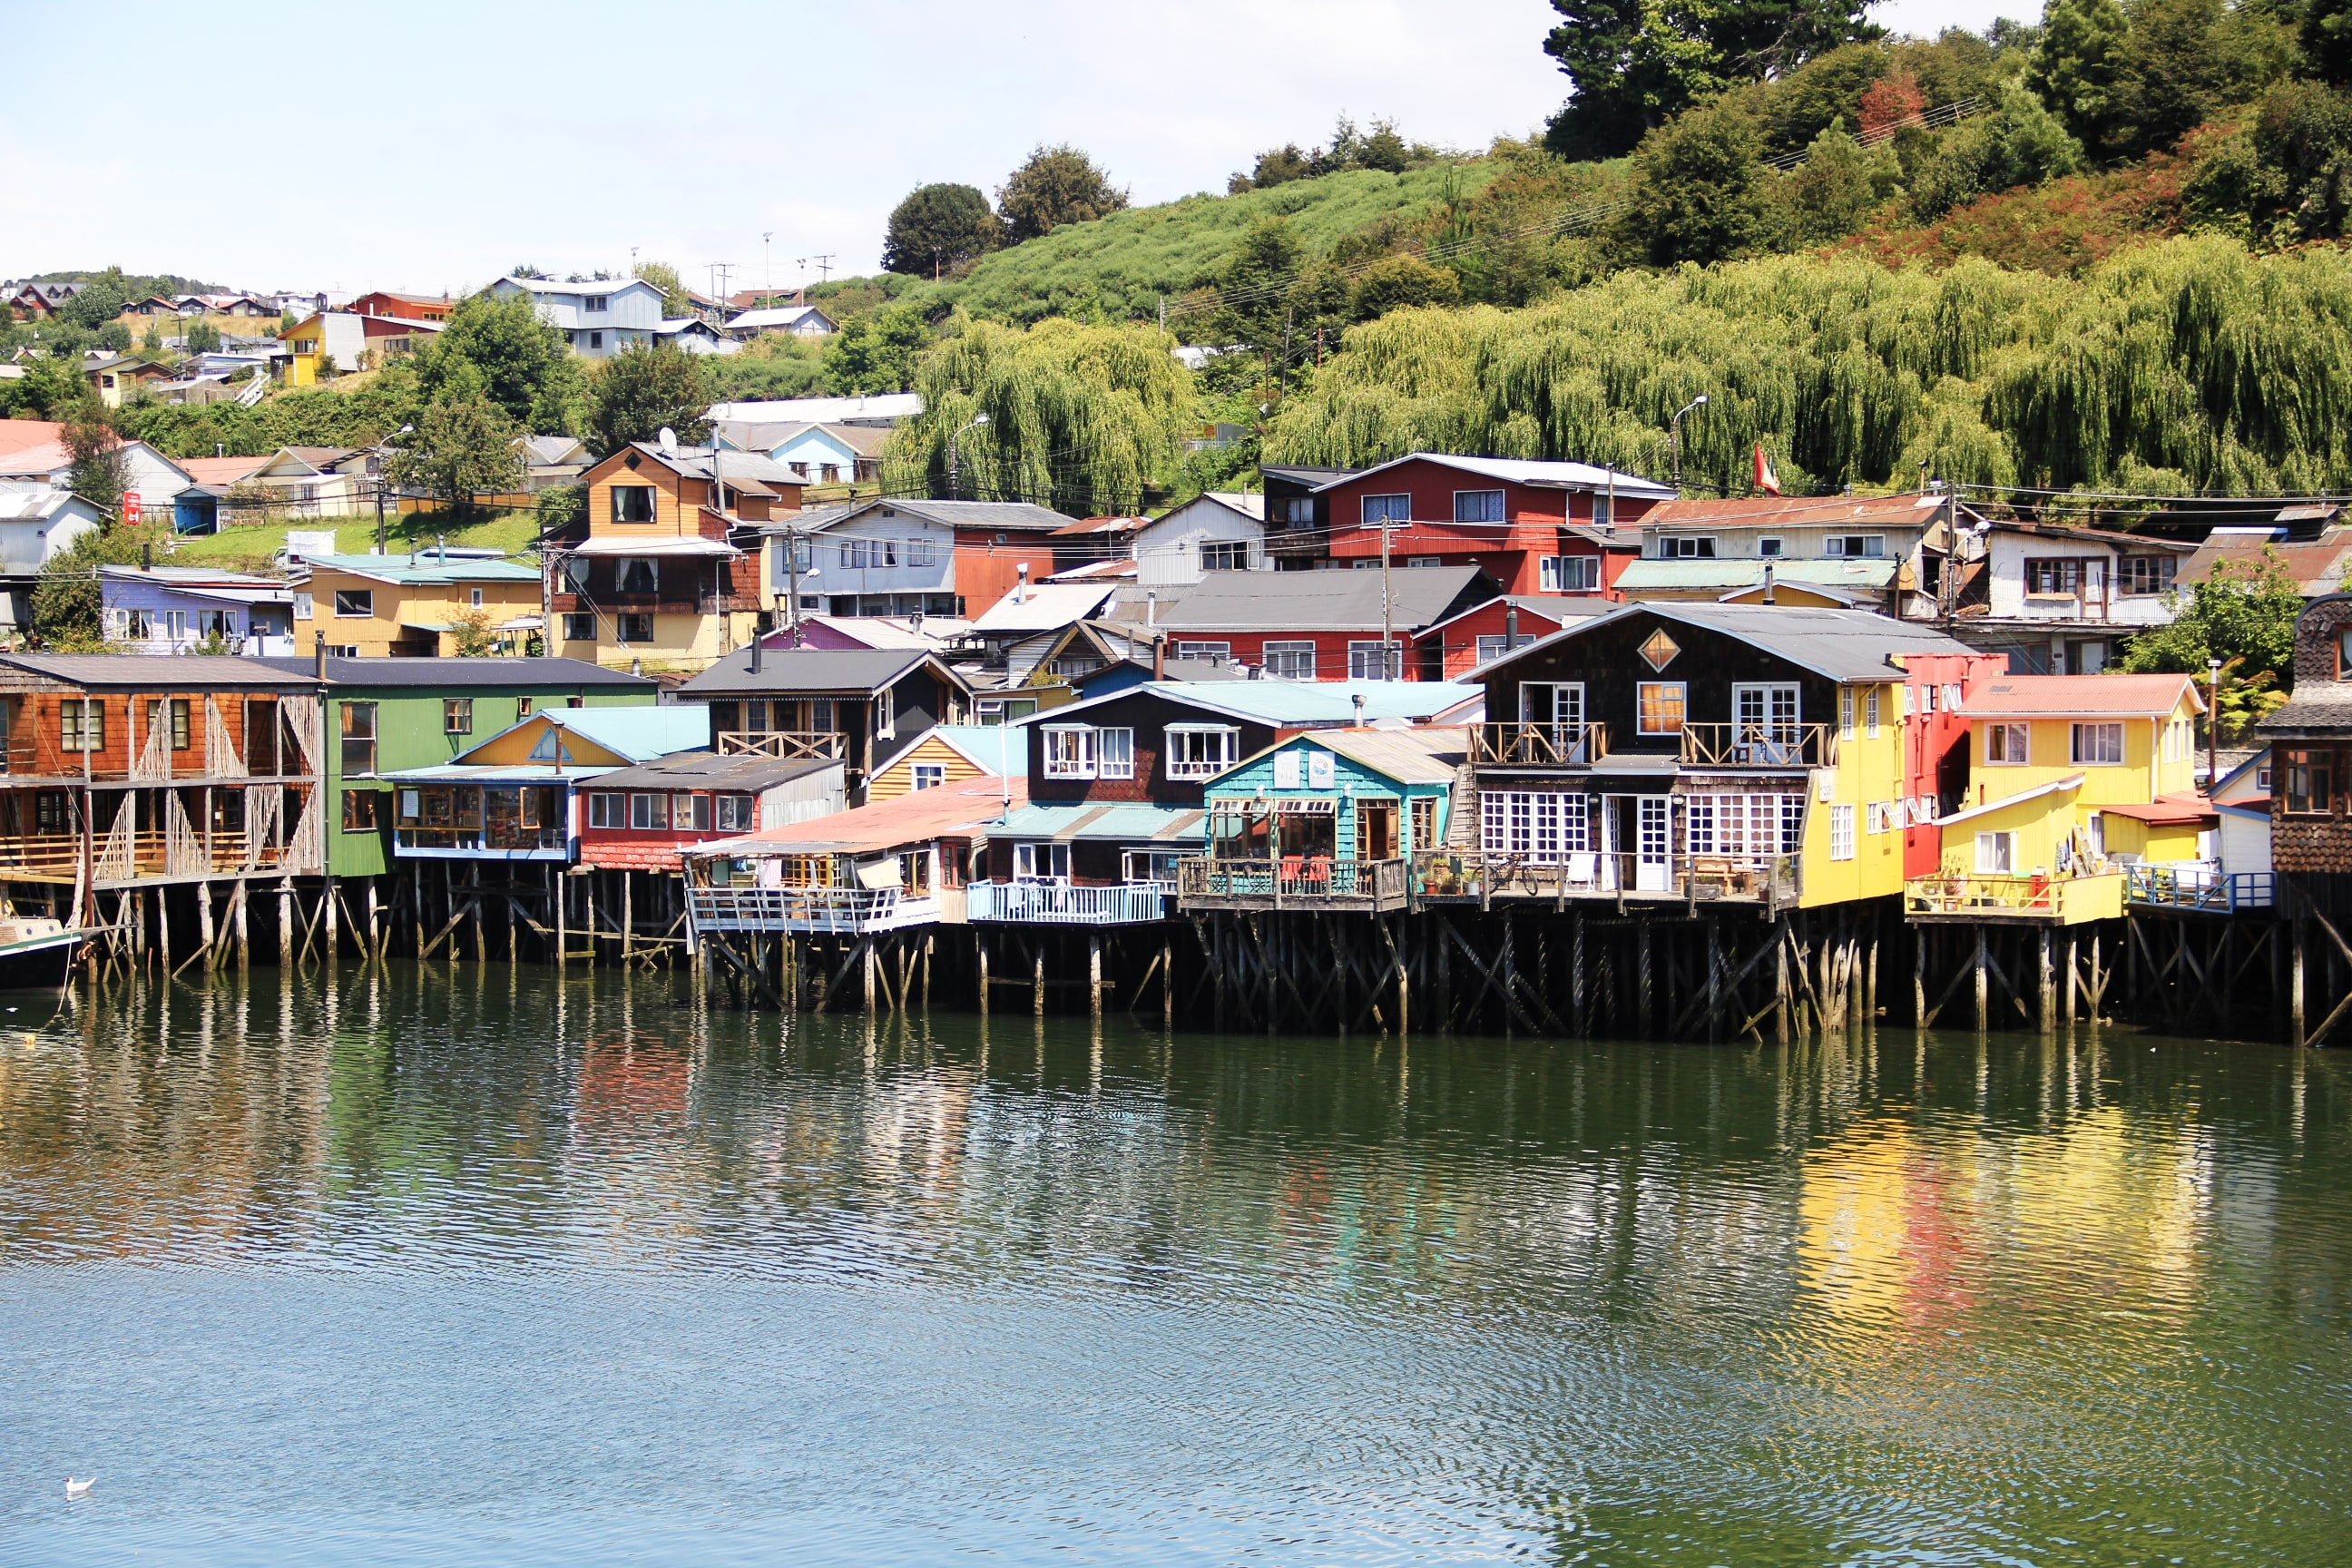 Sur de chile - road trip - chiloe - palafitos | Golden Strokes